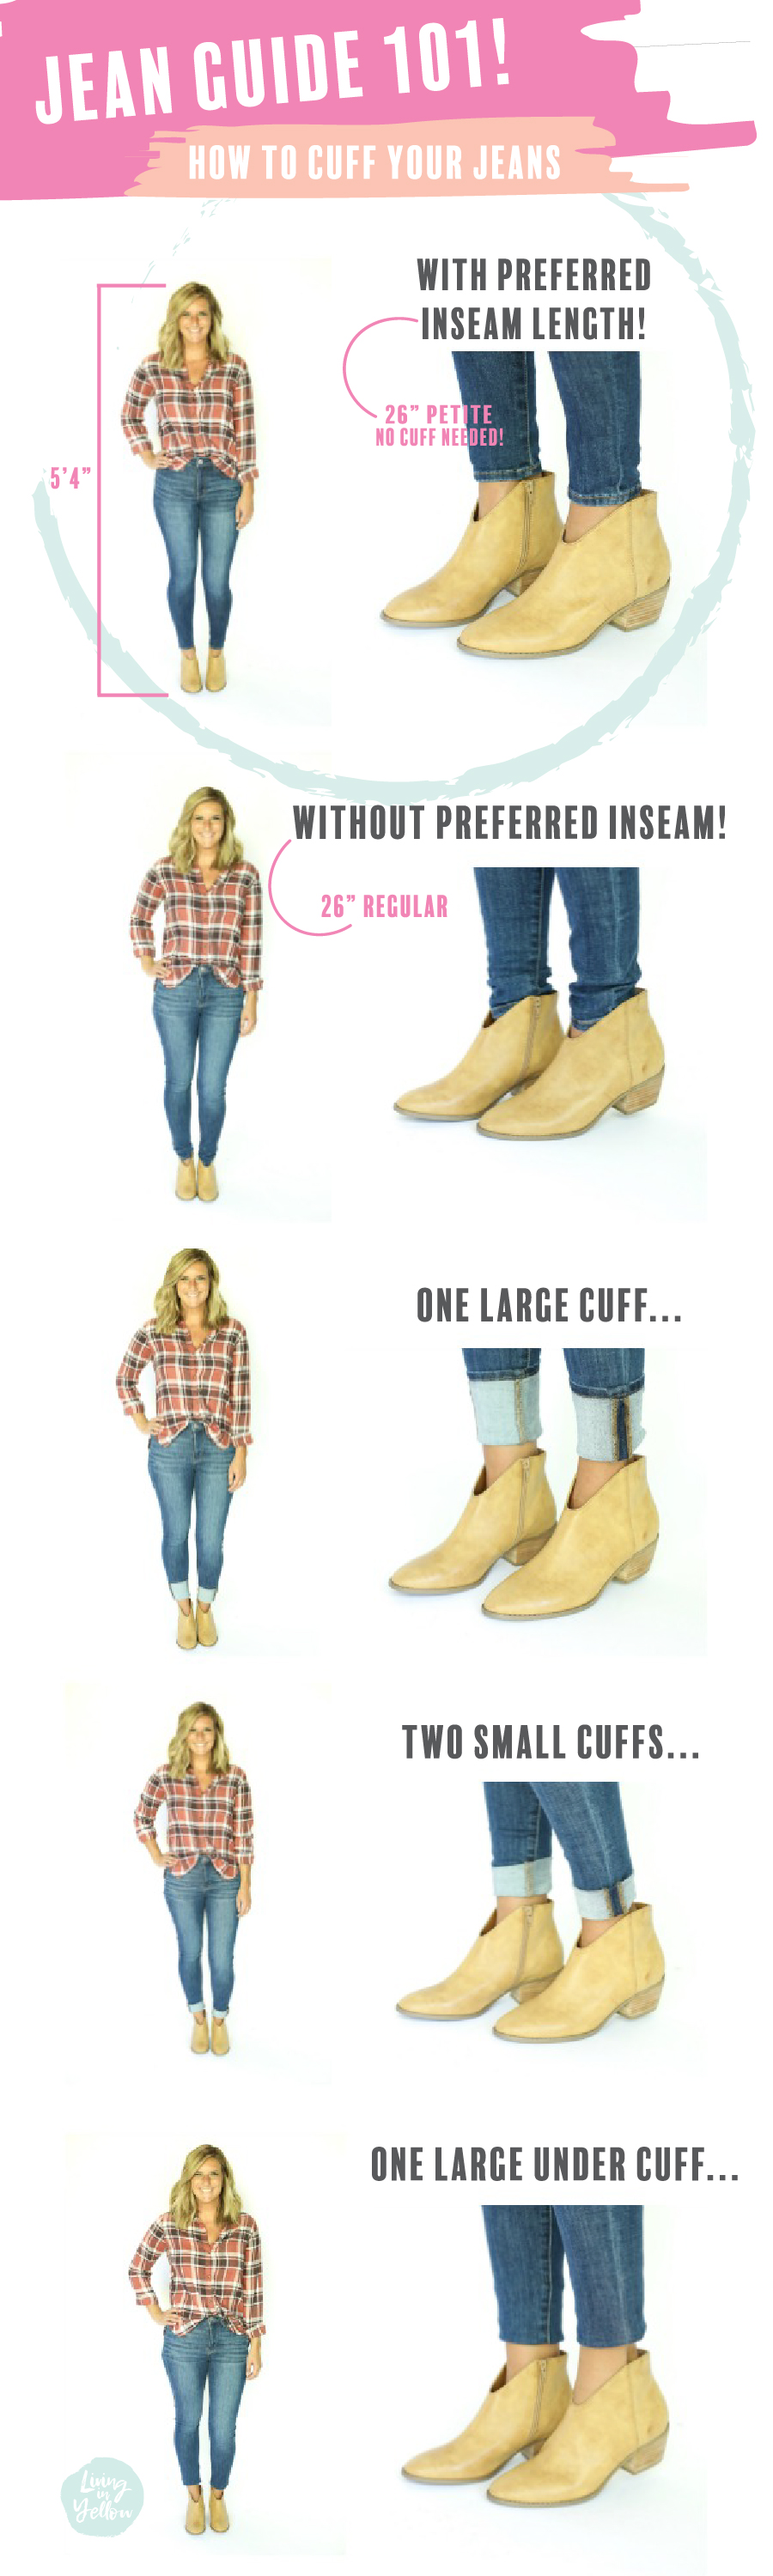 American Eagle Shorts Size Chart : american, eagle, shorts, chart, Ultimate, Guide, Skinny, Jeans, Living, Yellow